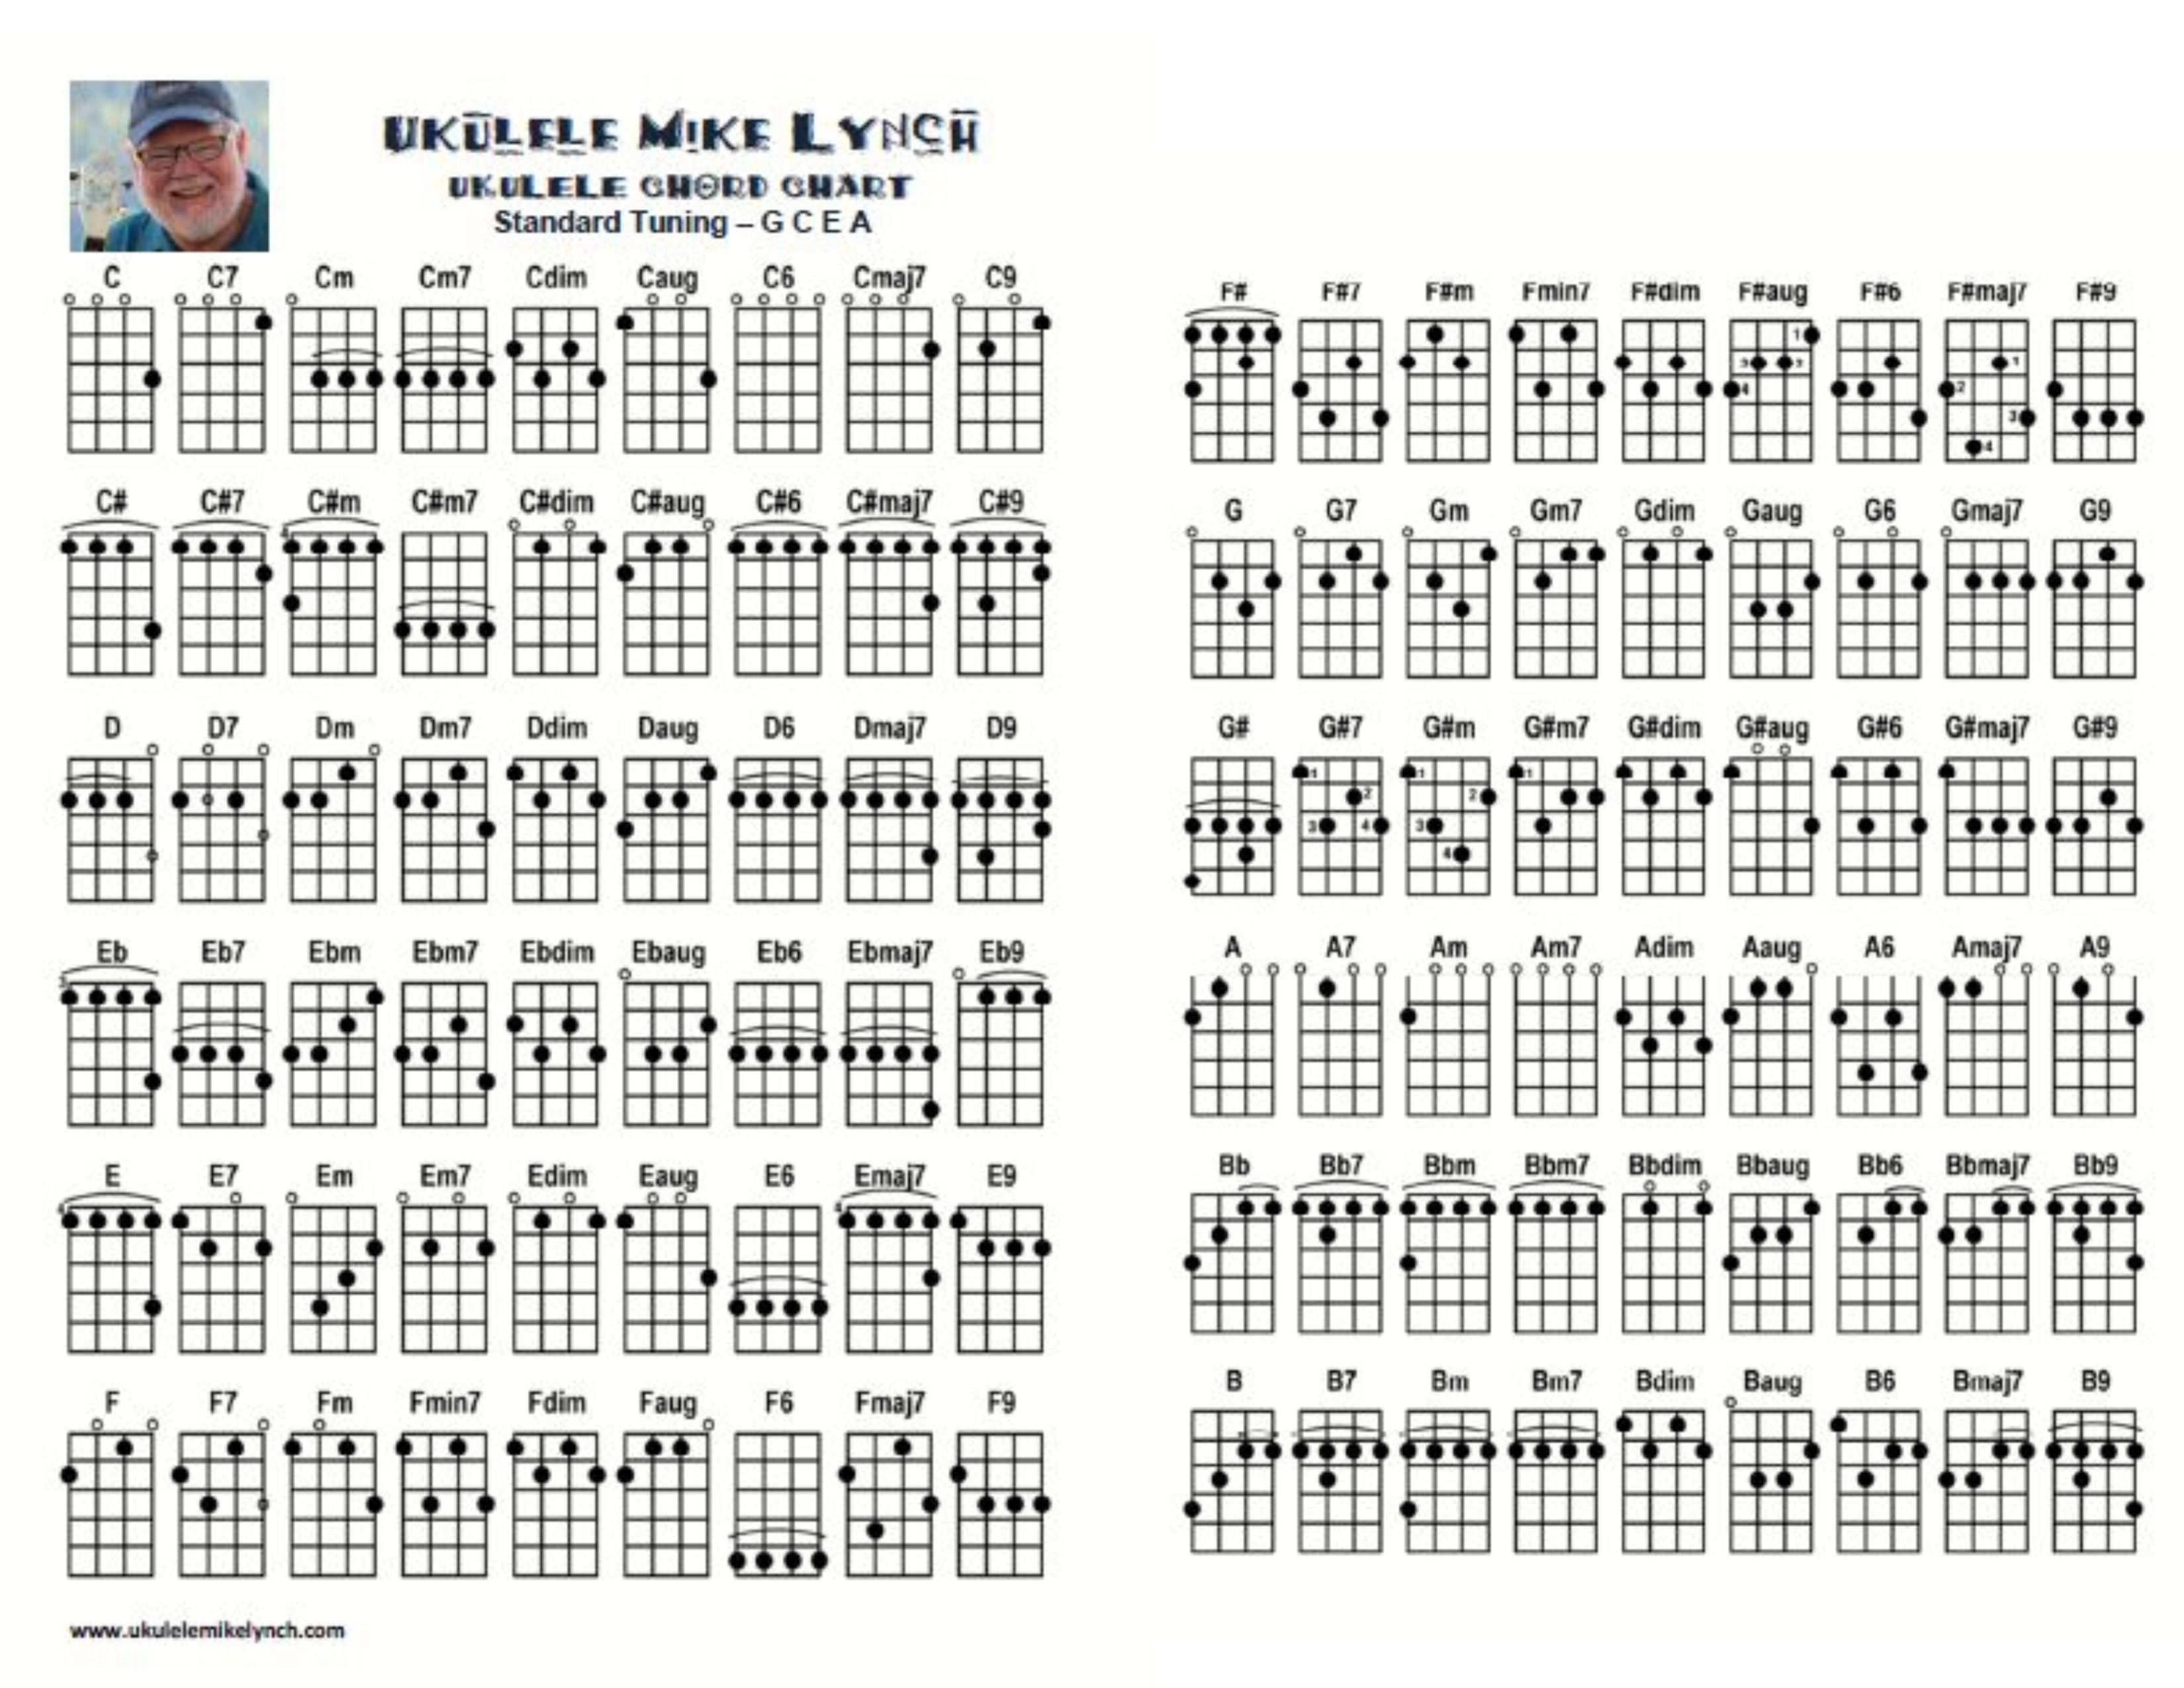 Did you get a ukulele for Christmas? Here is a chord sheet